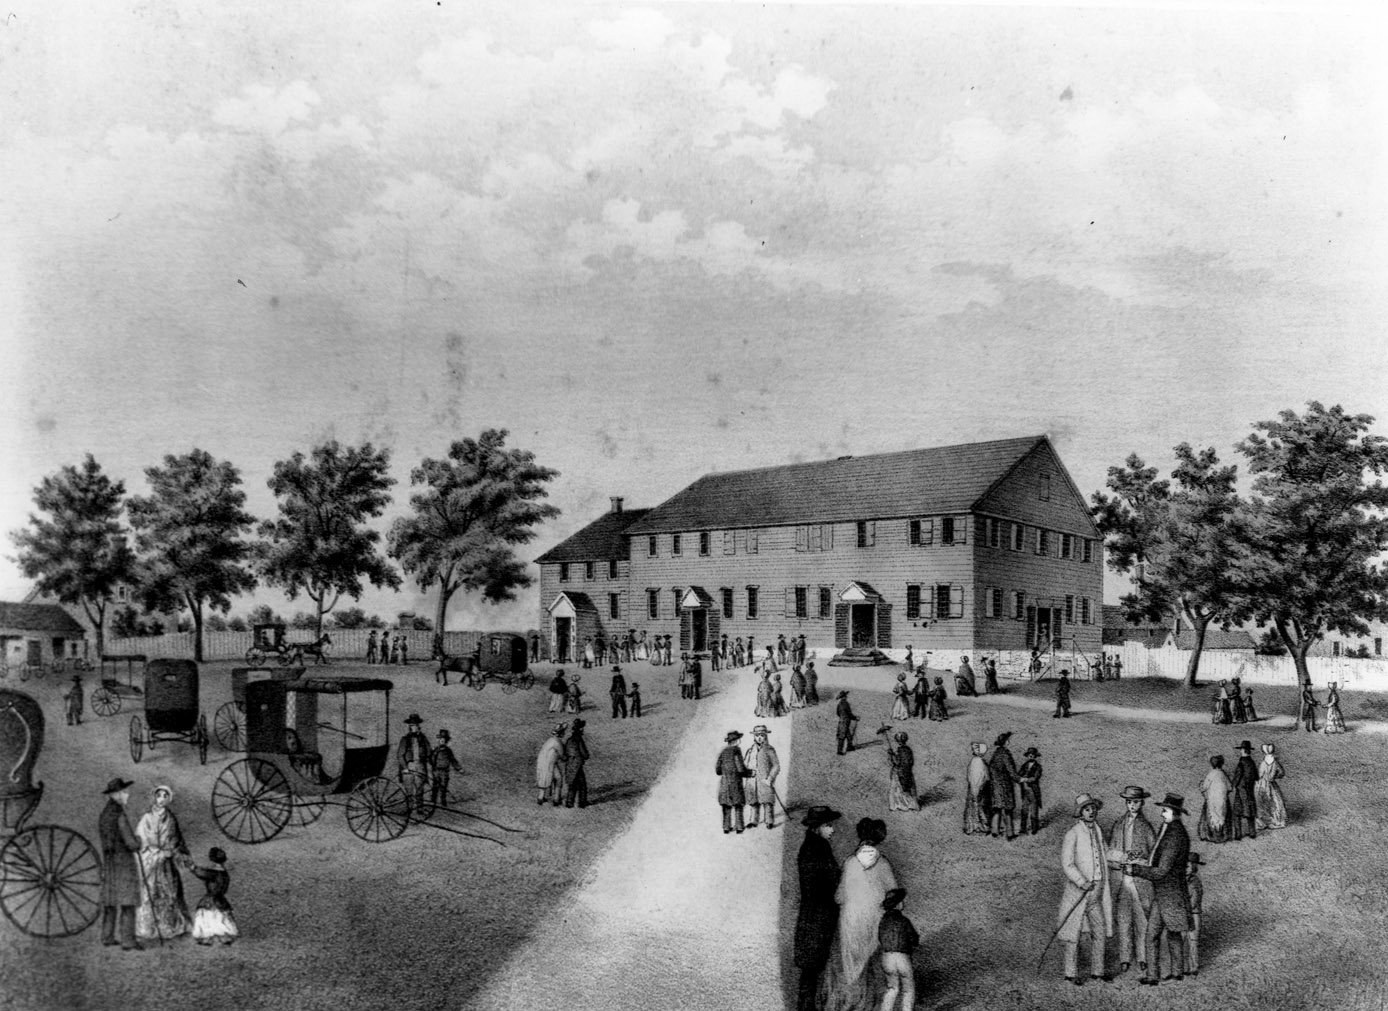 The Quaker religious house in 1850